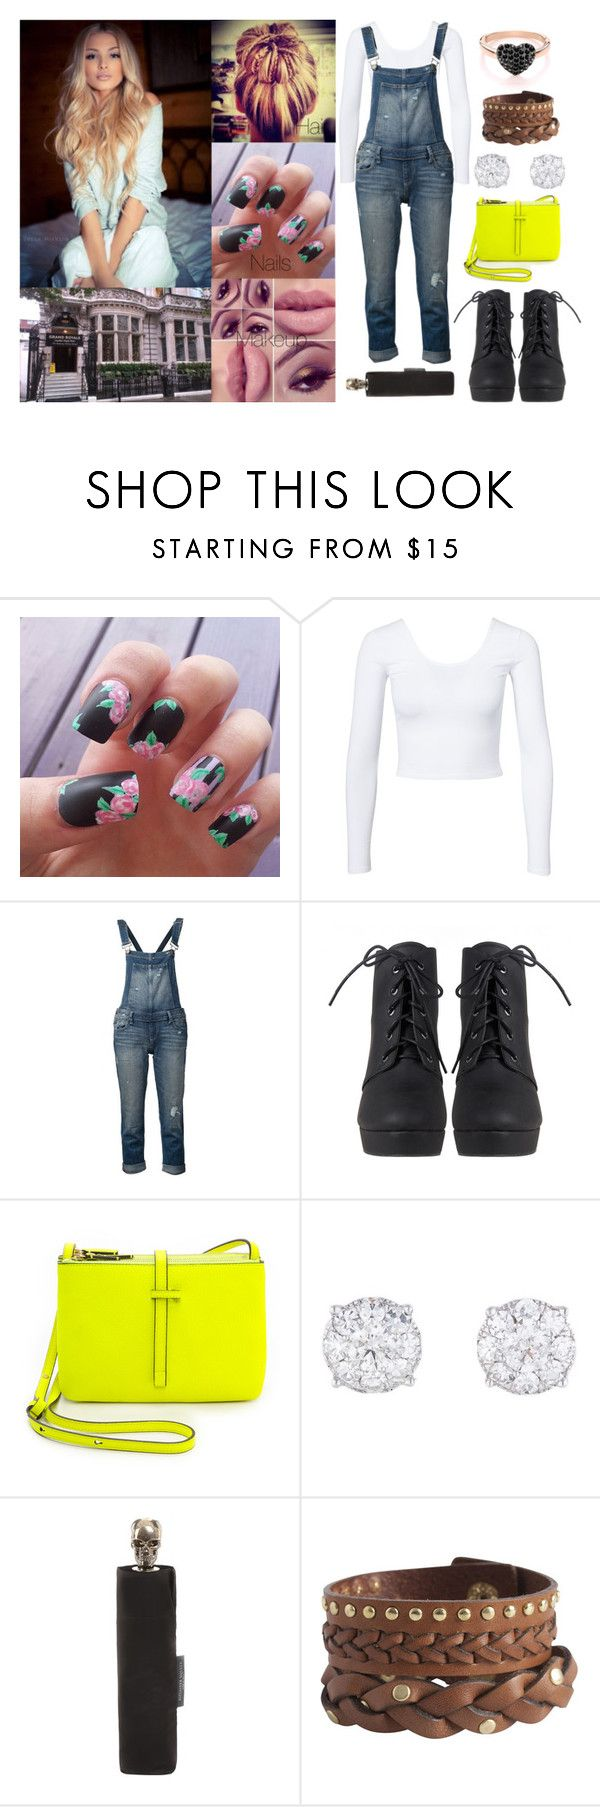 """""""Jessa's First Encounter With Perrie Edwards"""" by just-casey ❤ liked on Polyvore featuring Estradeur, Paige Denim, Annabel Ingall, Alexander McQueen and Pieces"""